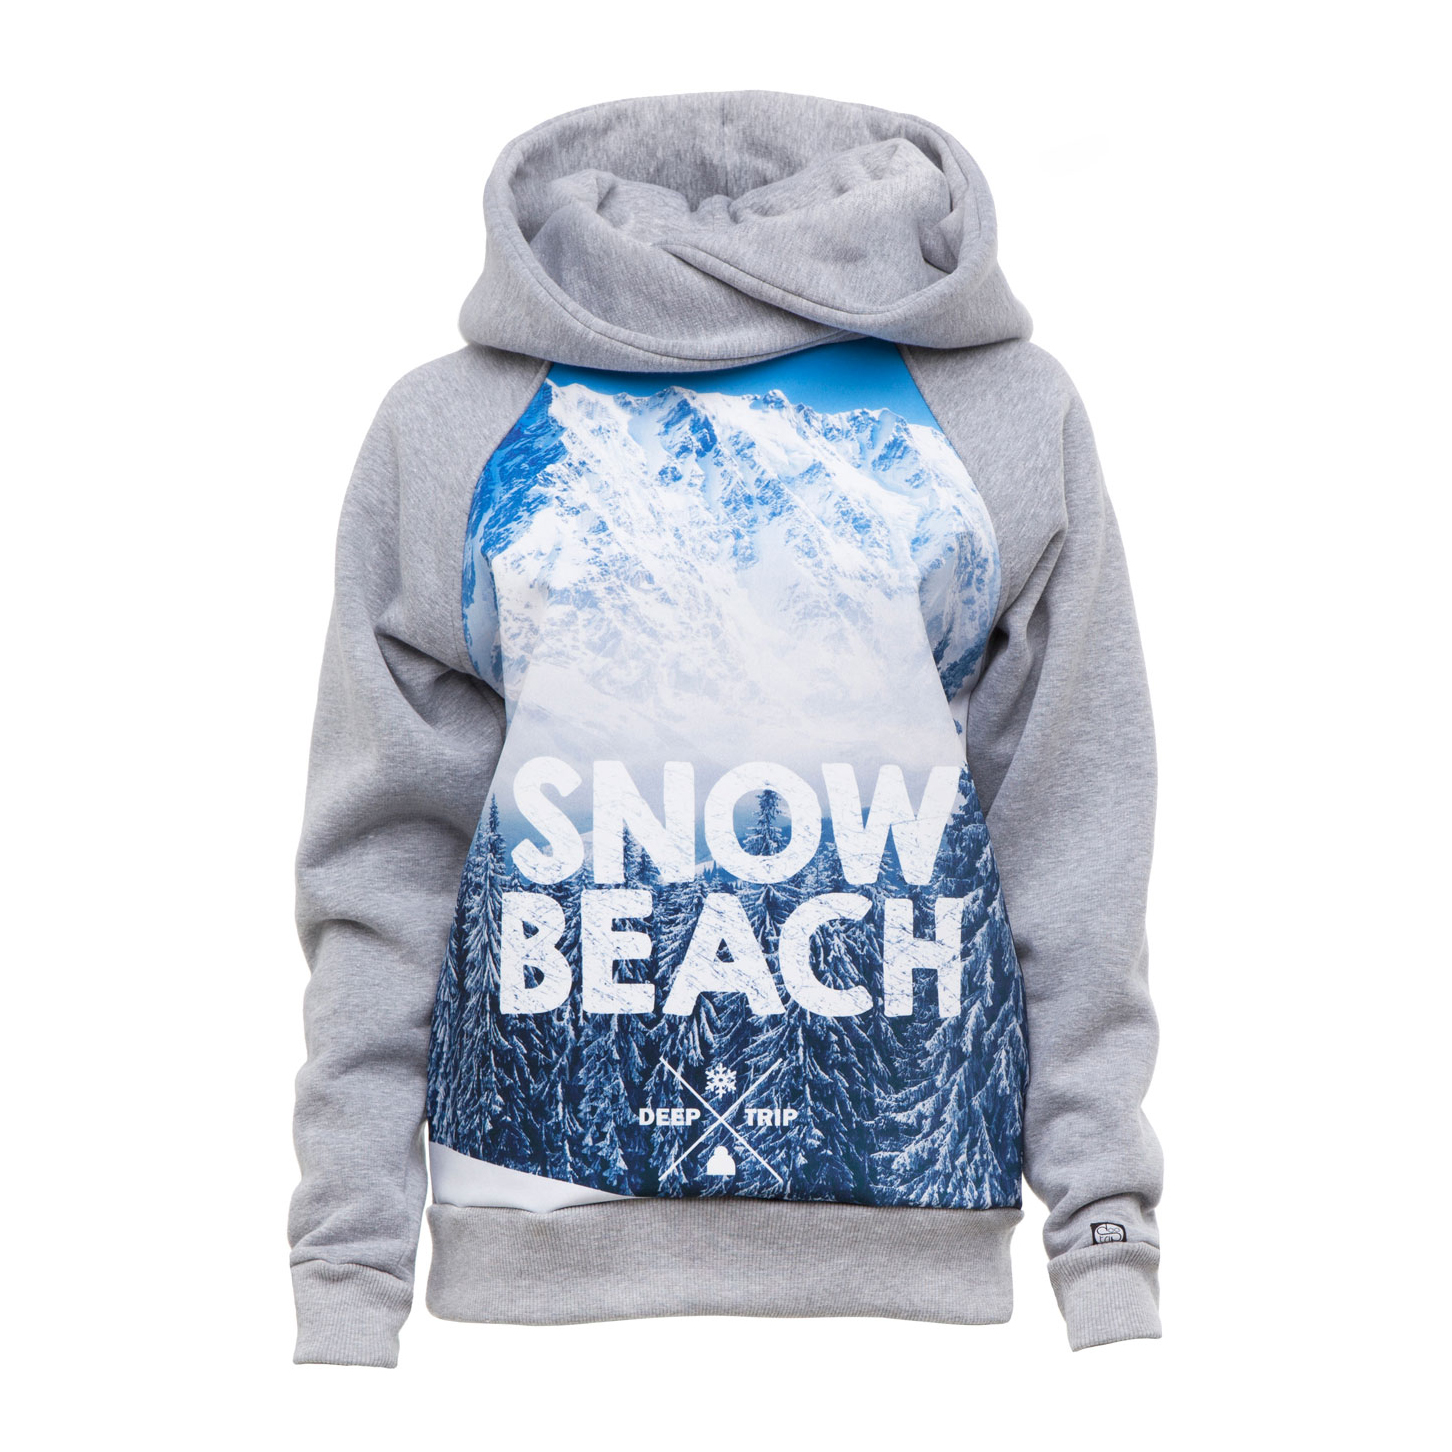 Bluza Snow beach - 8717